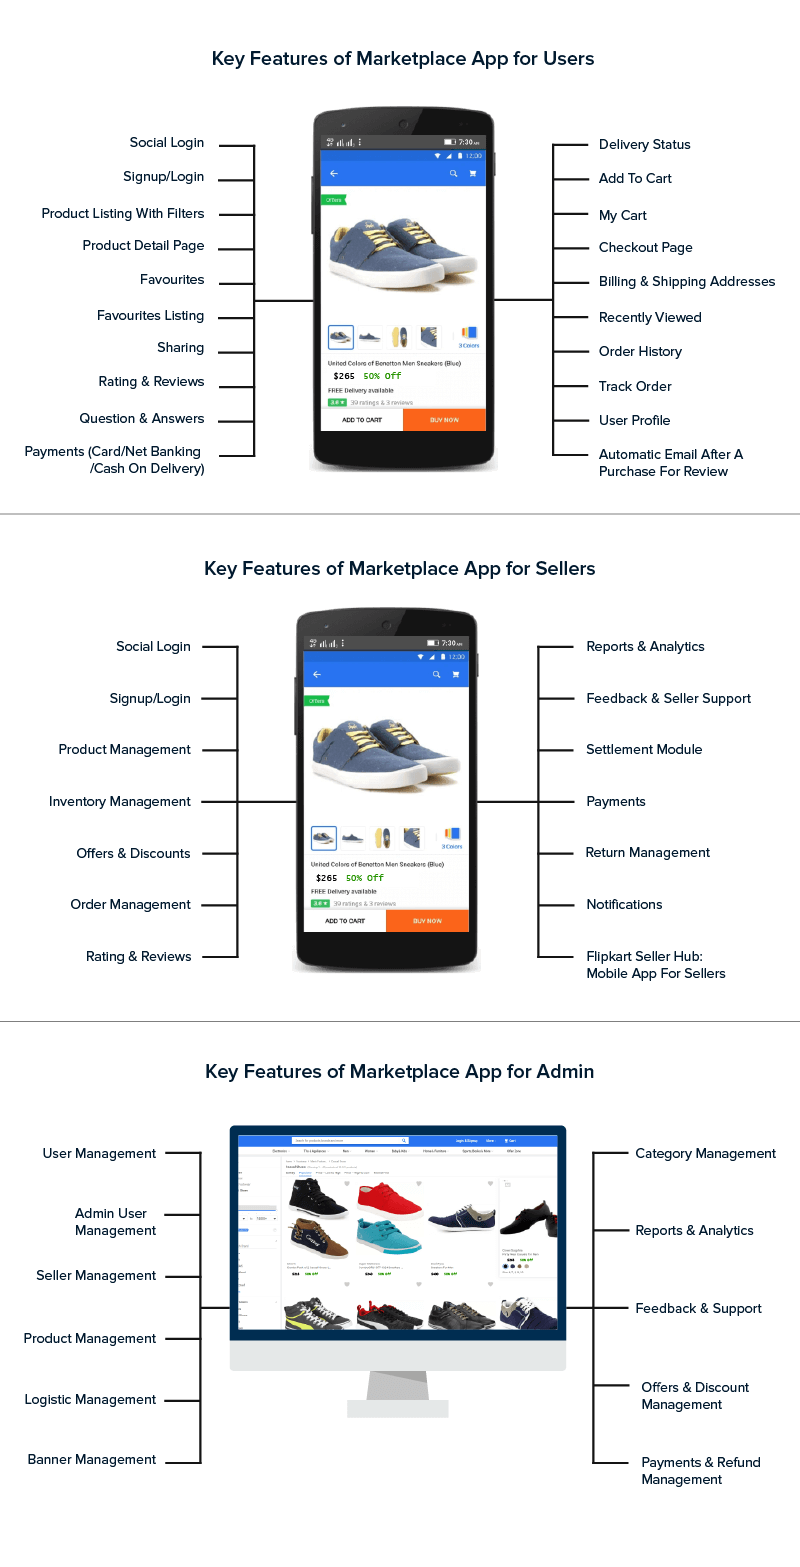 Key Features of Maketplace App for Users